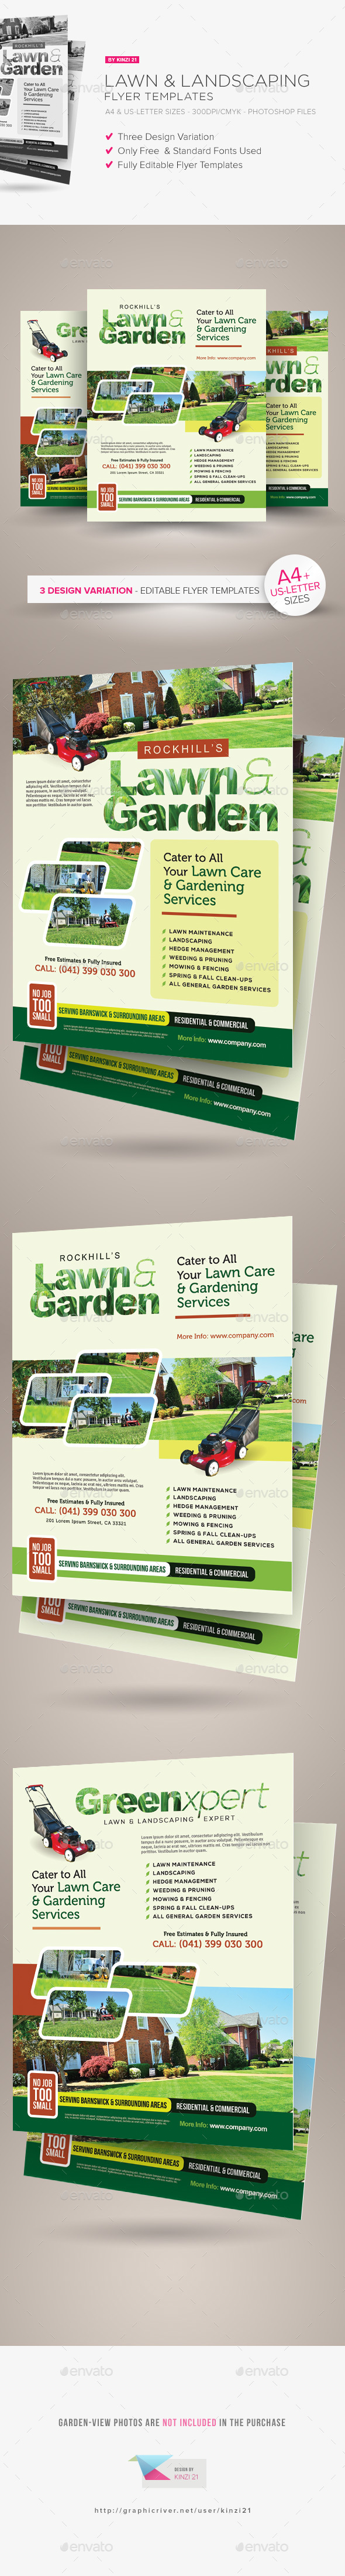 Lawn & Landscaping Flyer Templates - Corporate Flyers